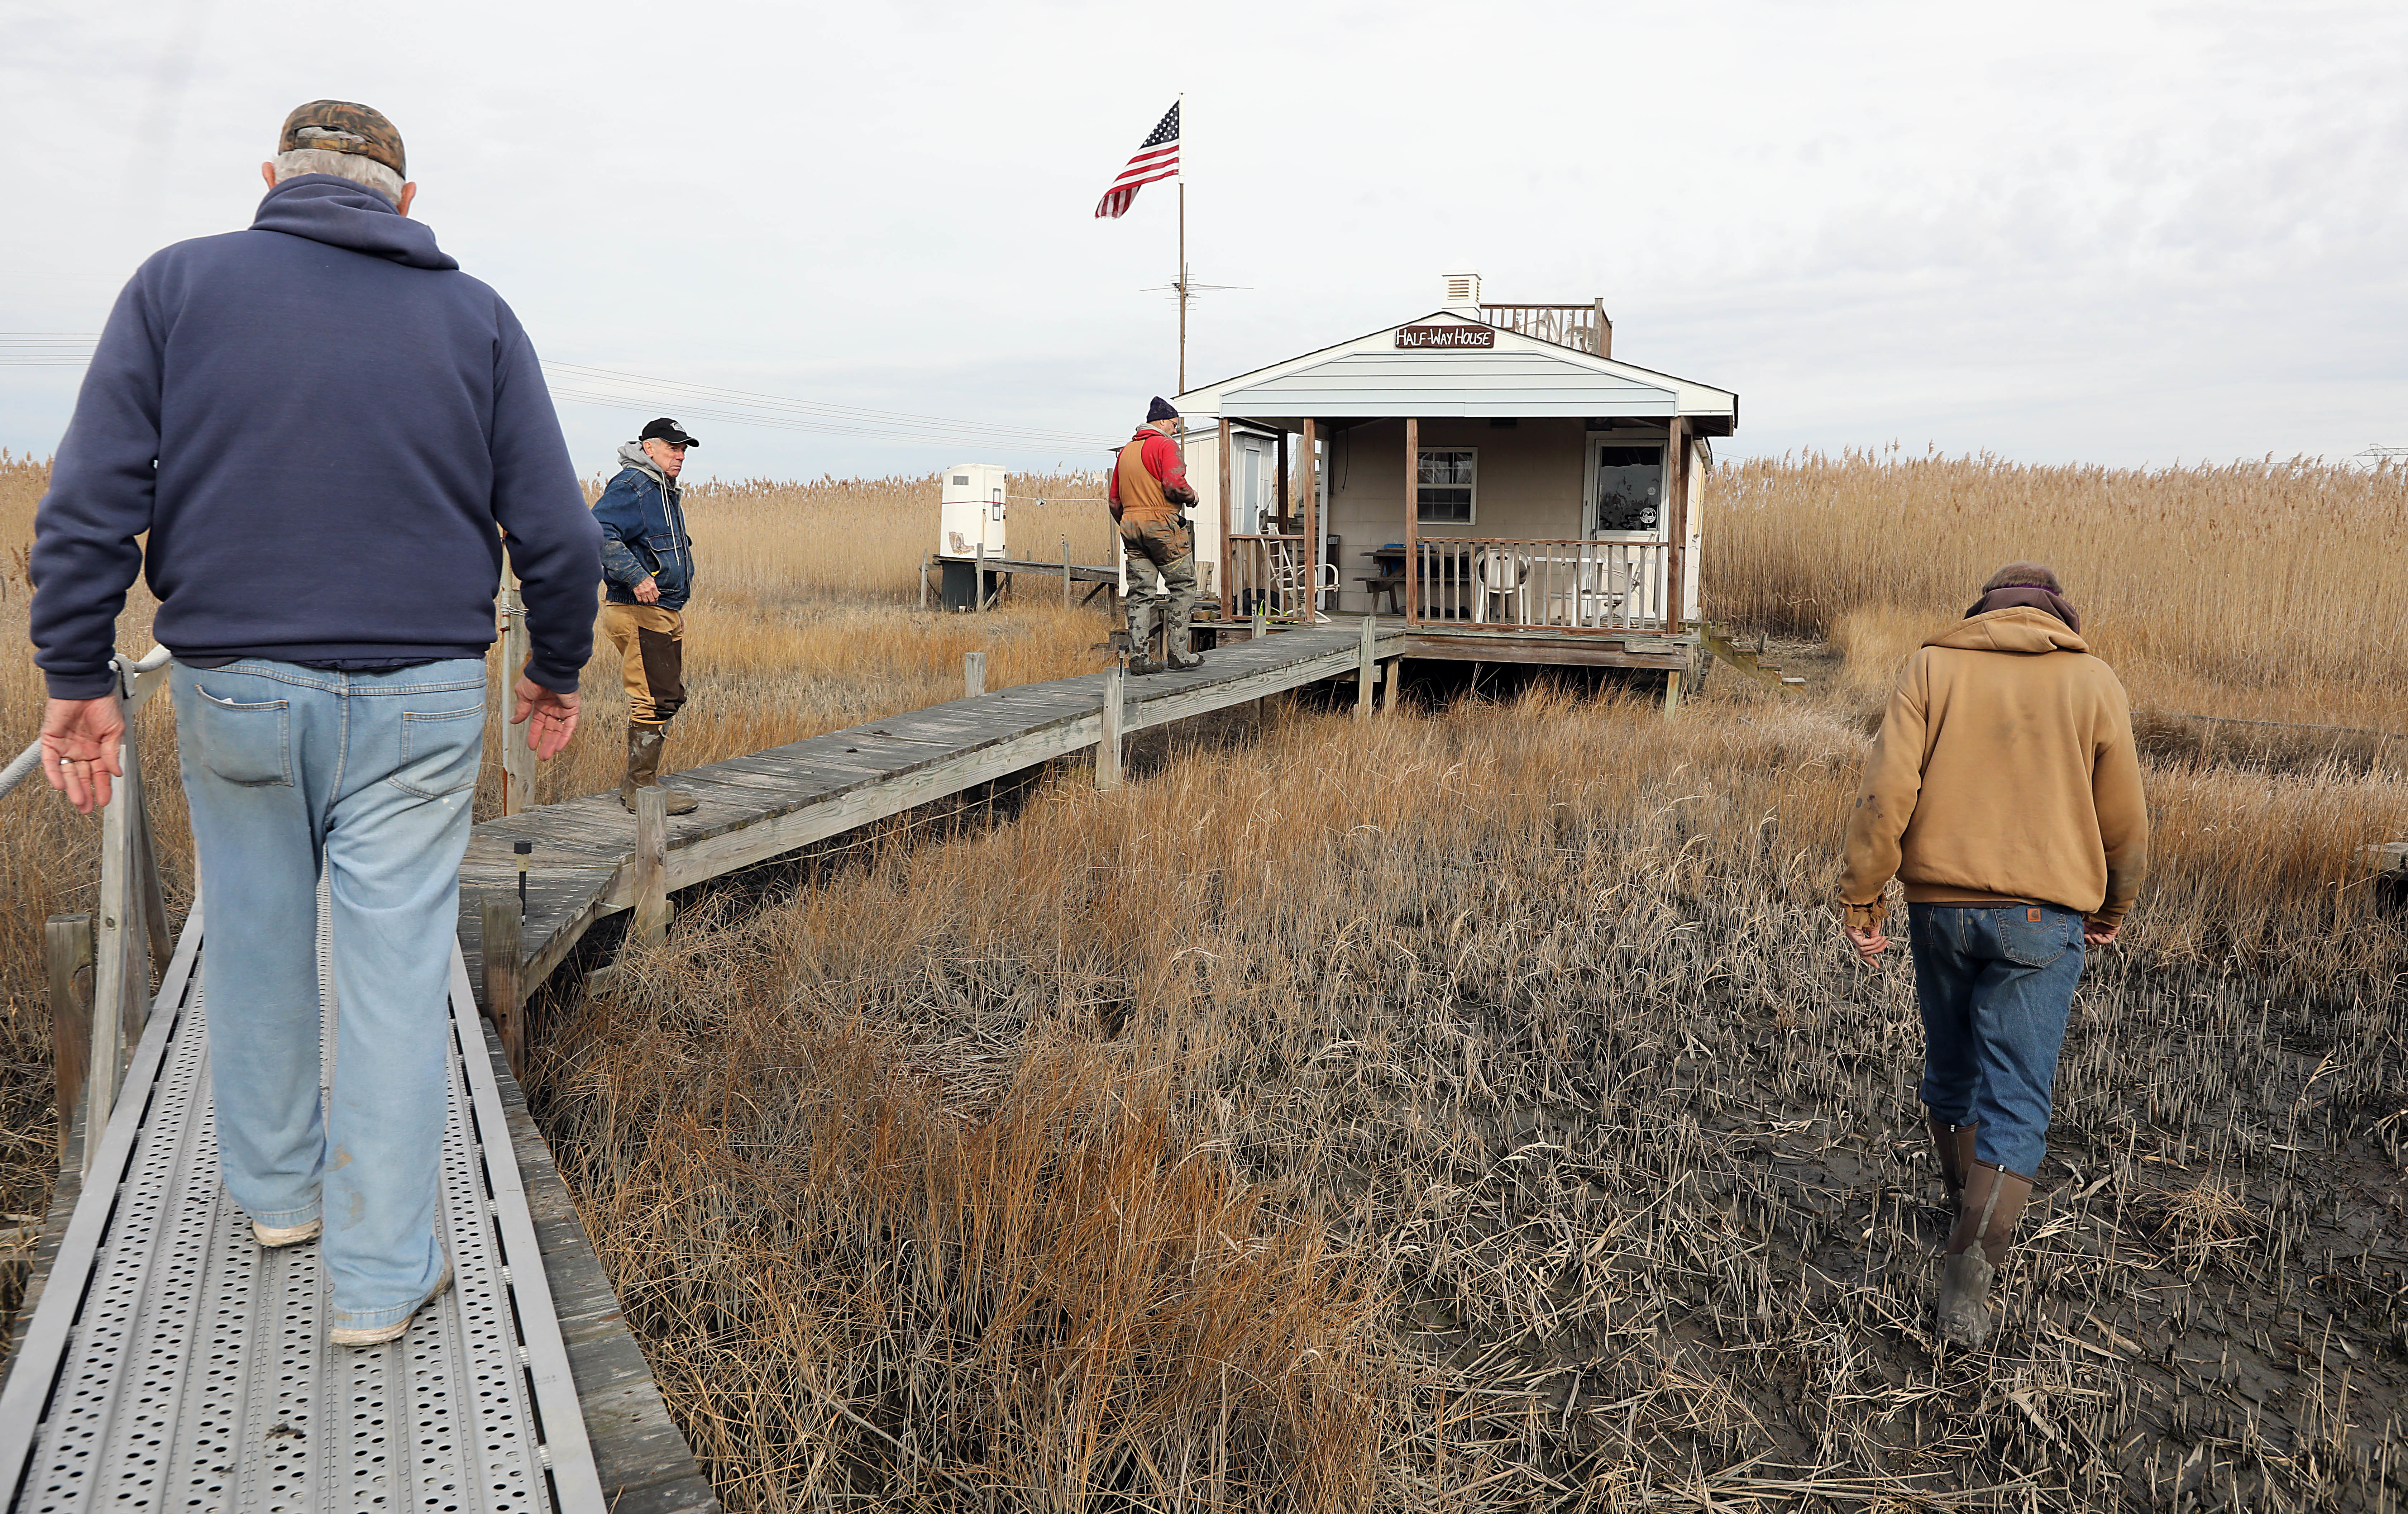 CABINS23-D 01-22-2018.(AKIRA SUWA / For The Inquirer).DEP is removing cabins along the creek on protected waterfront in Salem County,NJ.L to R. Chuck Liber, 72, his brother, Bob Liber,79 Bob´s son Matt Liber51 and John Clendining,60 who has a cabin in his property are walking toward to a Liber family´s Cabin in their property near Hope Creek & Delaware River.